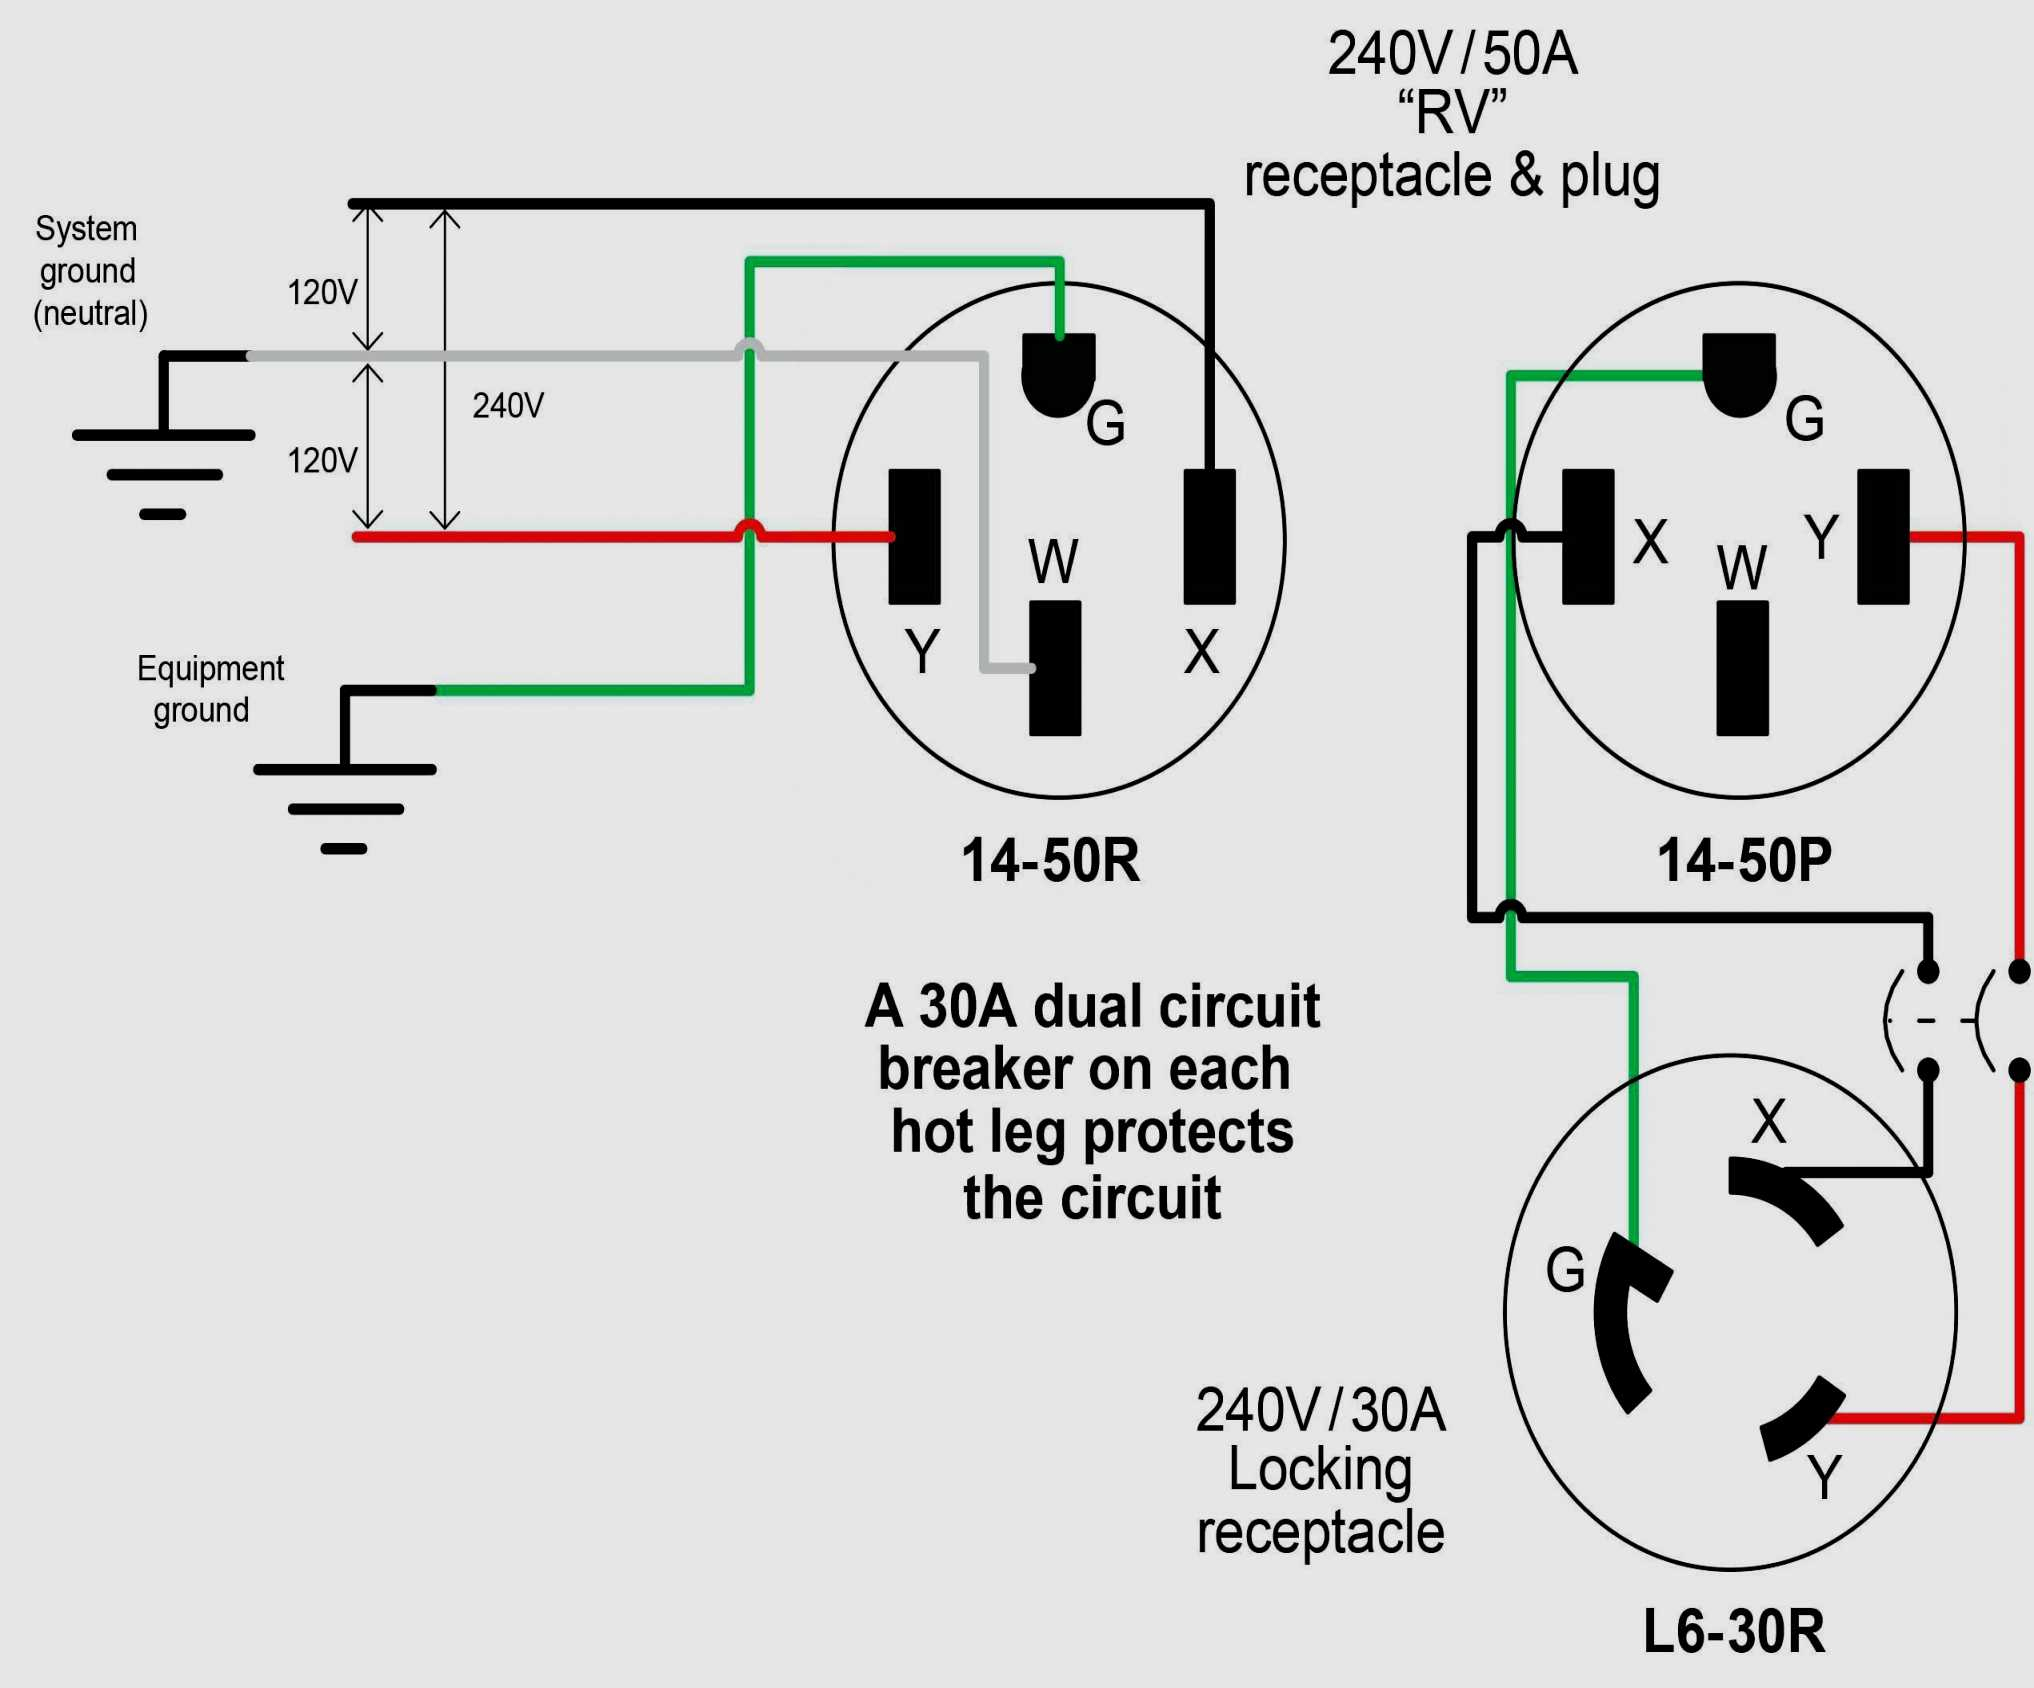 3 Prong Dryer Schematic Wiring Diagram | Manual E-Books - Dryer Plug Wiring Diagram